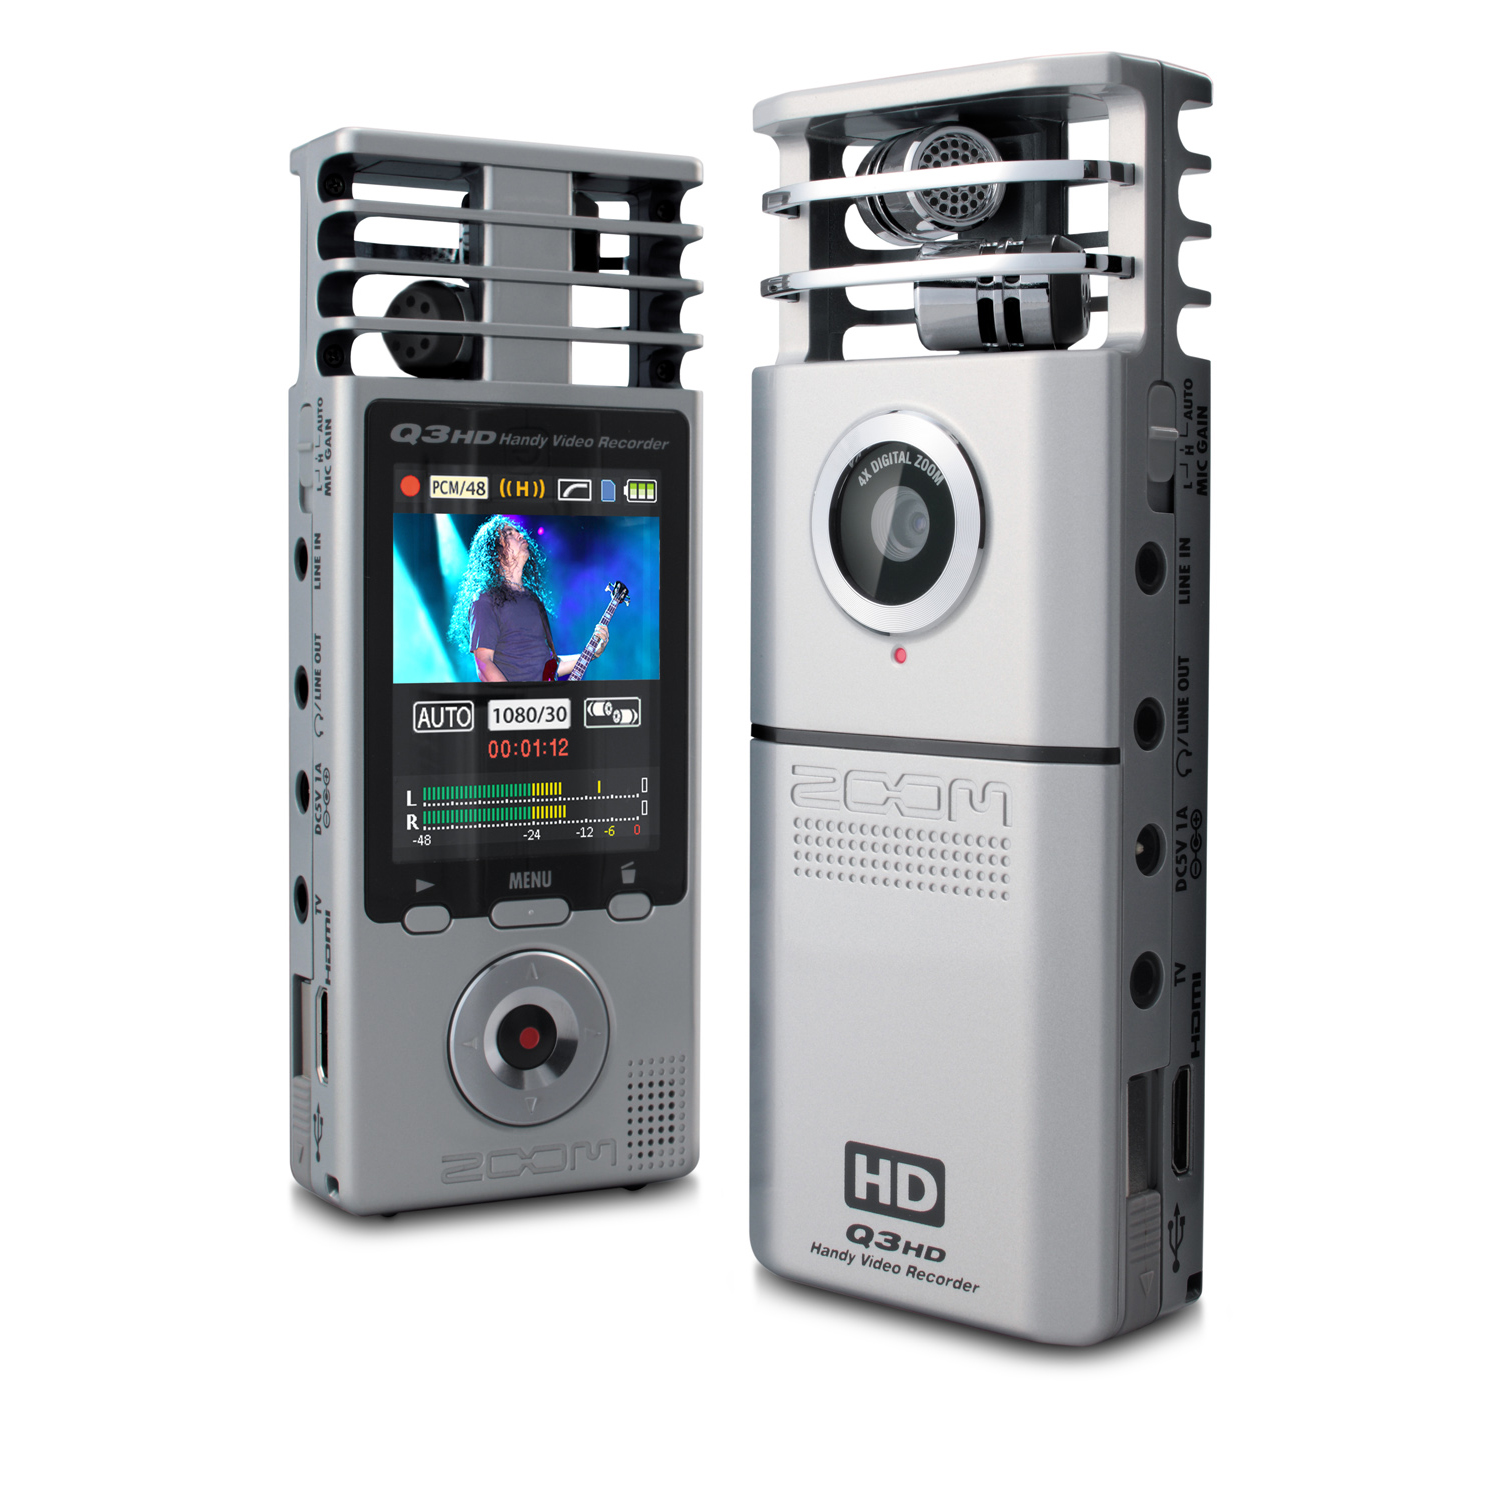 zoom q3hd handy video recorder manual